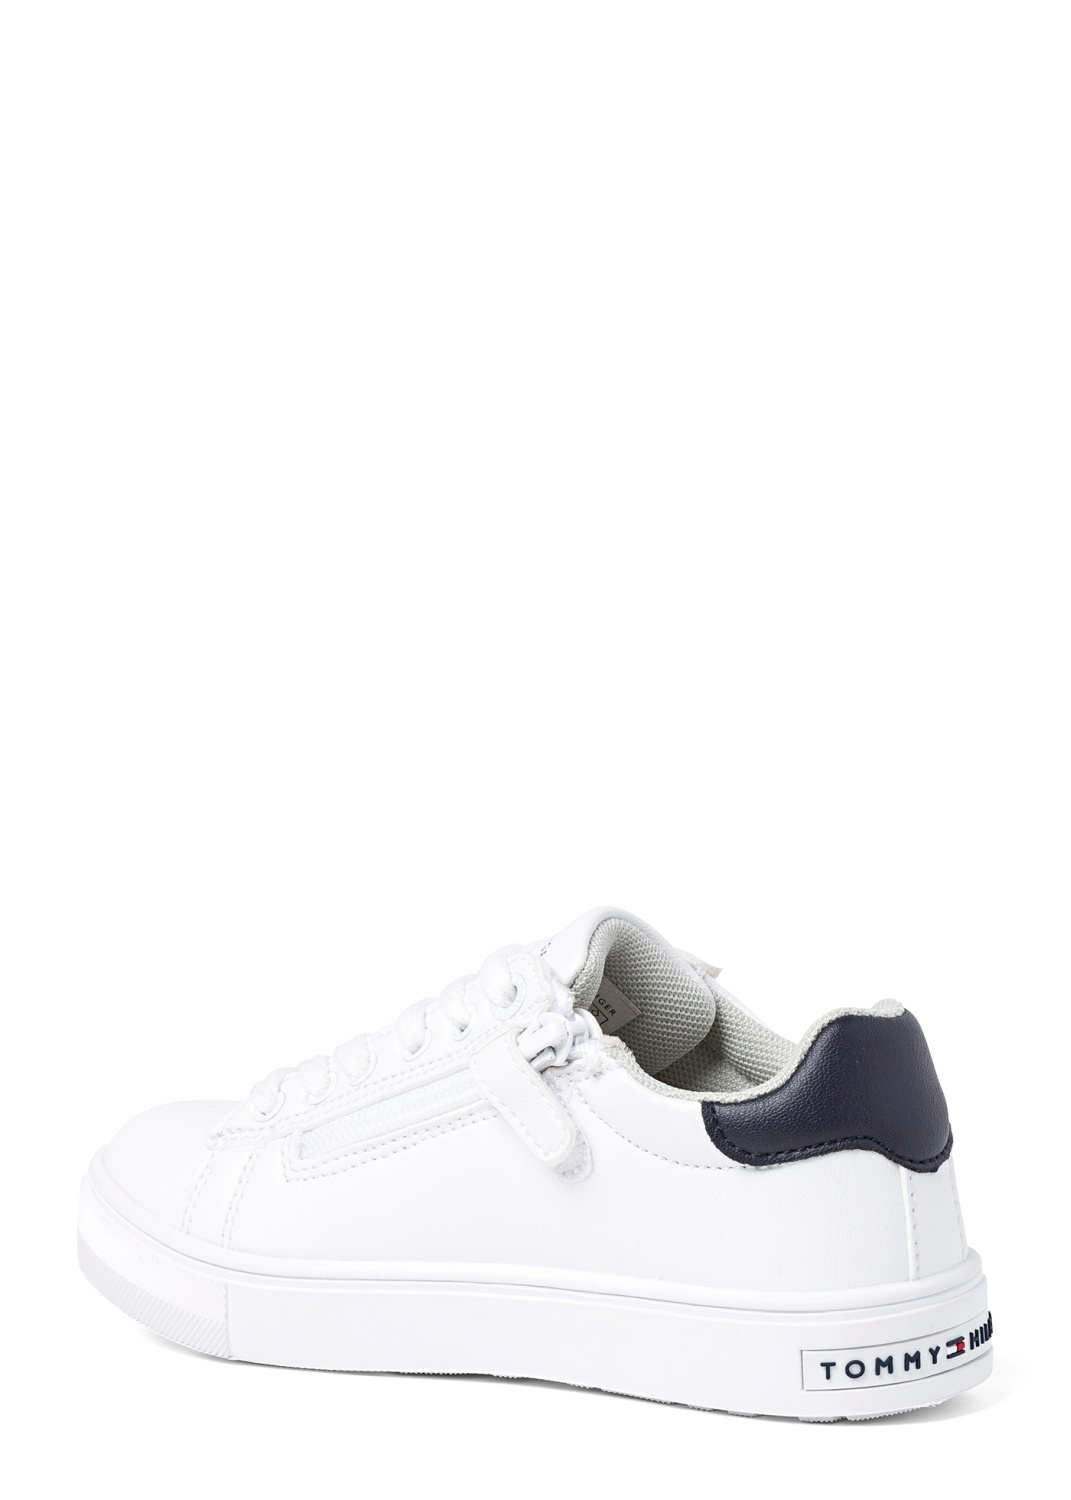 LOW CUT LACE-UP SNEAKER image number 1